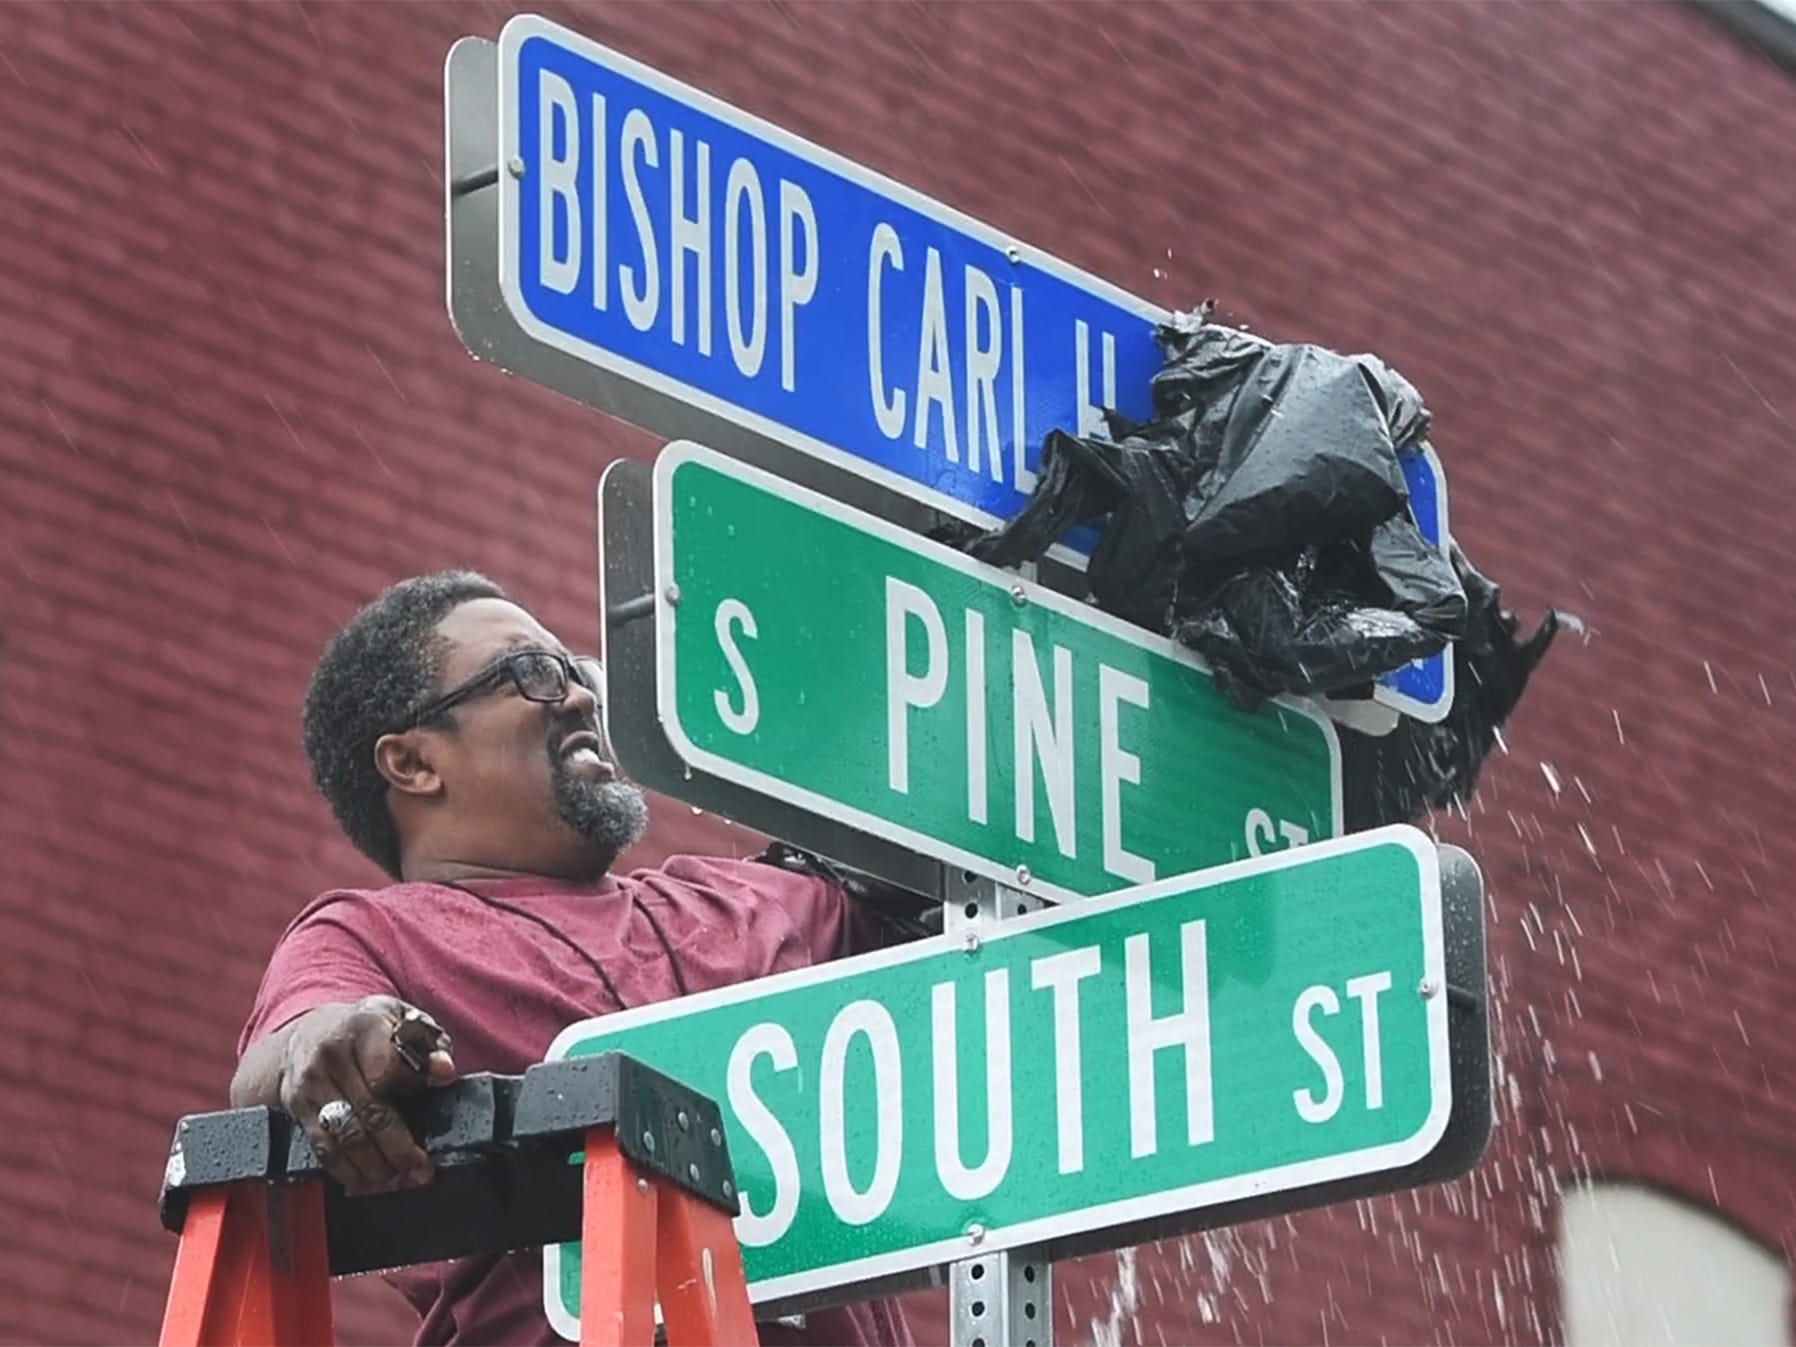 Stephon Scott, the son of Bishop Scott, unveils a new sign honoring Bishop Carl H. Scott at Pine and South Streets in York in the rain Sunday.